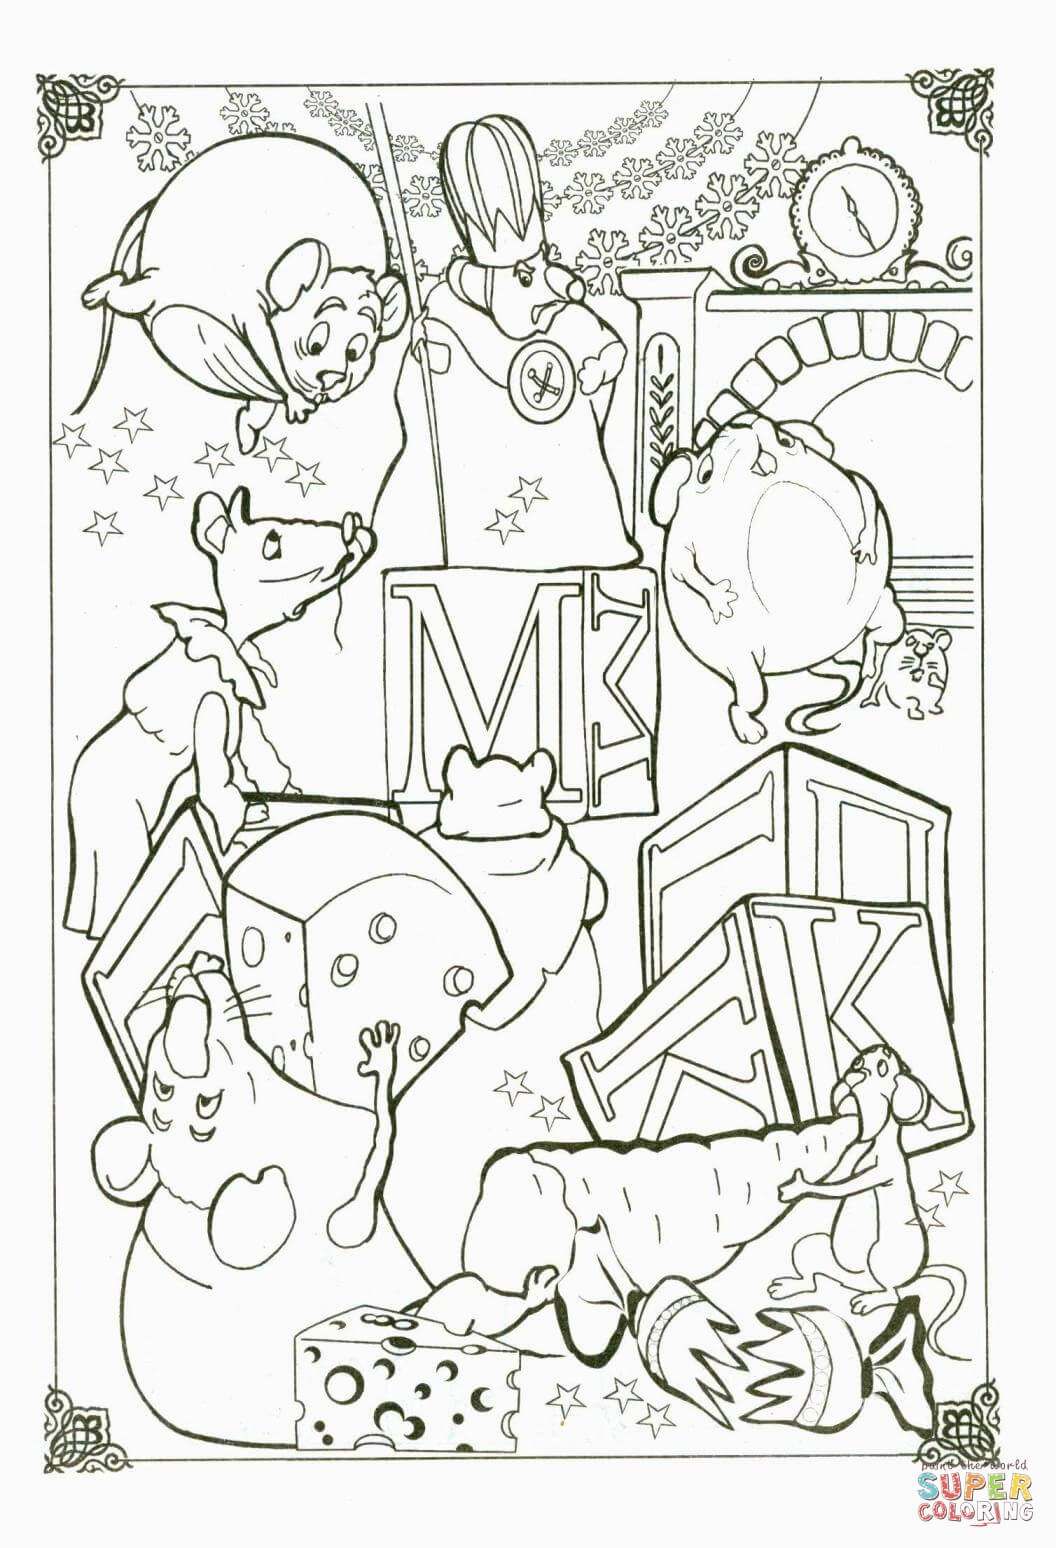 Mice Coloring Page